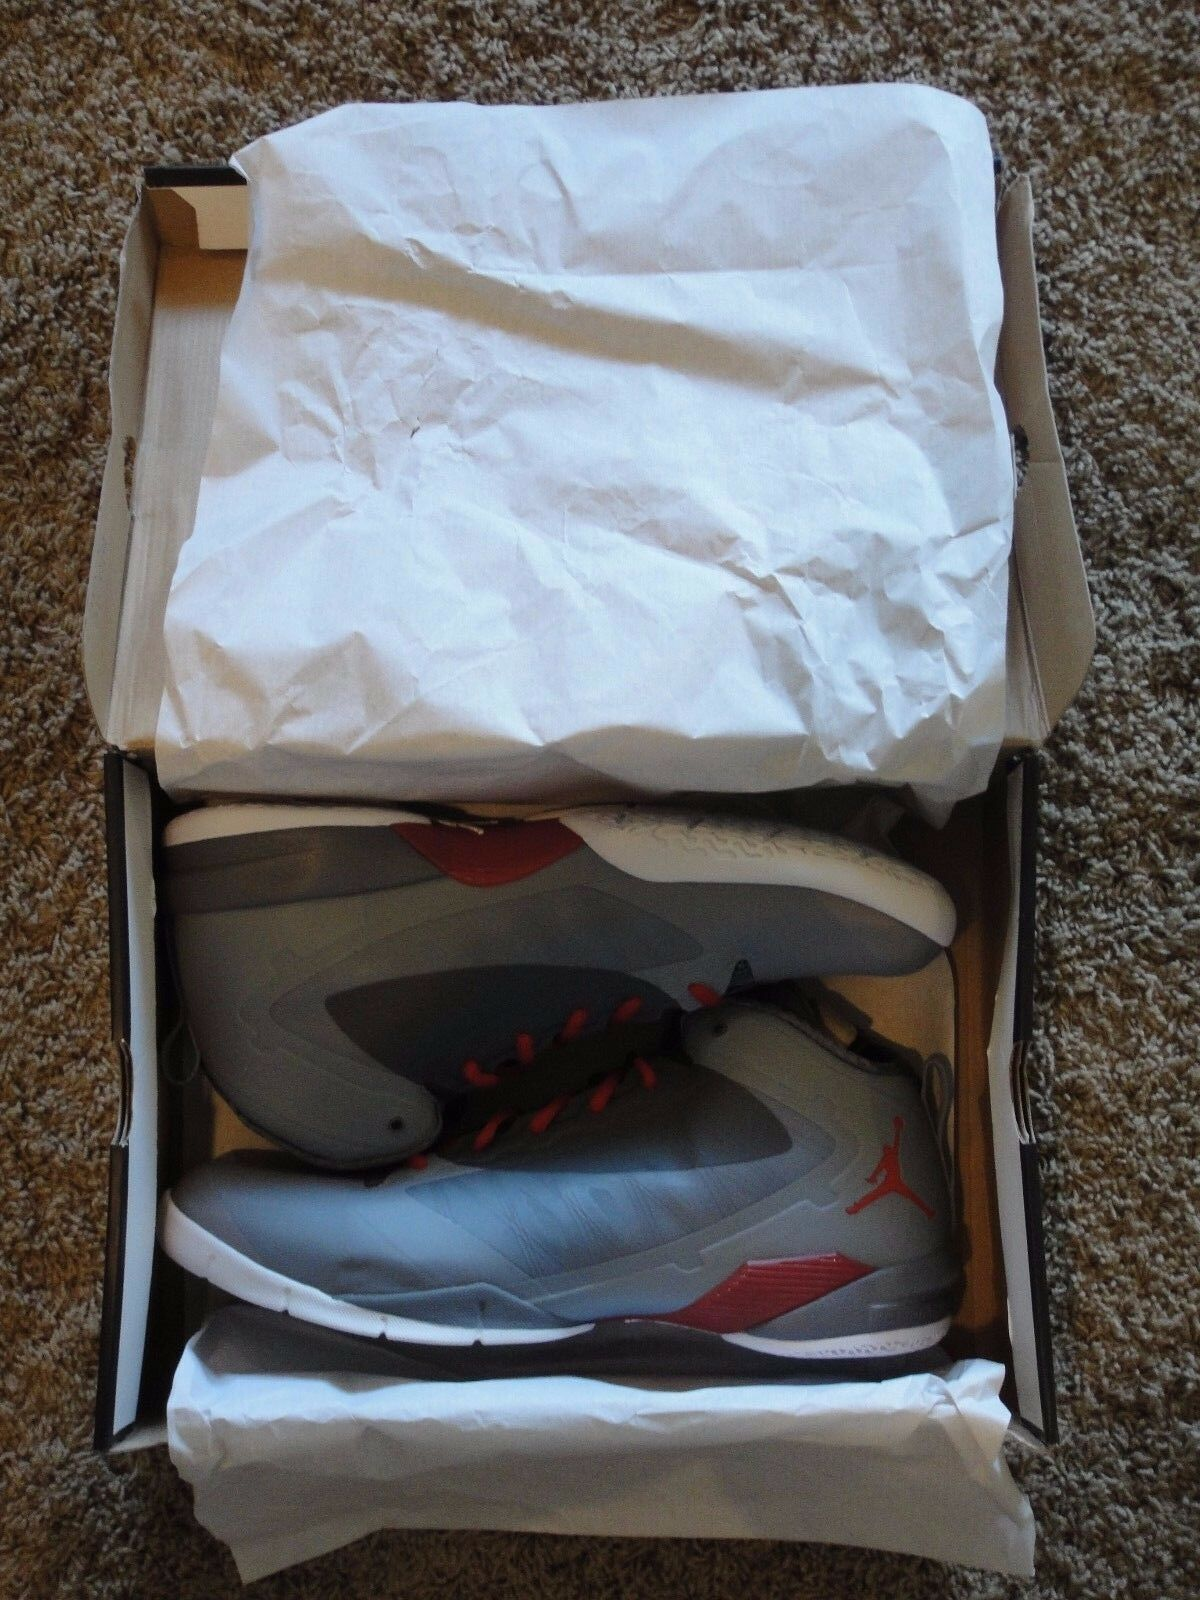 NIKE AIR JORDAN 2012 PROMO SAMPLE SHOES DWYANE WADE WADE WADE PE SIZE 15.5 NEW IN BOX WOW 87aaa5